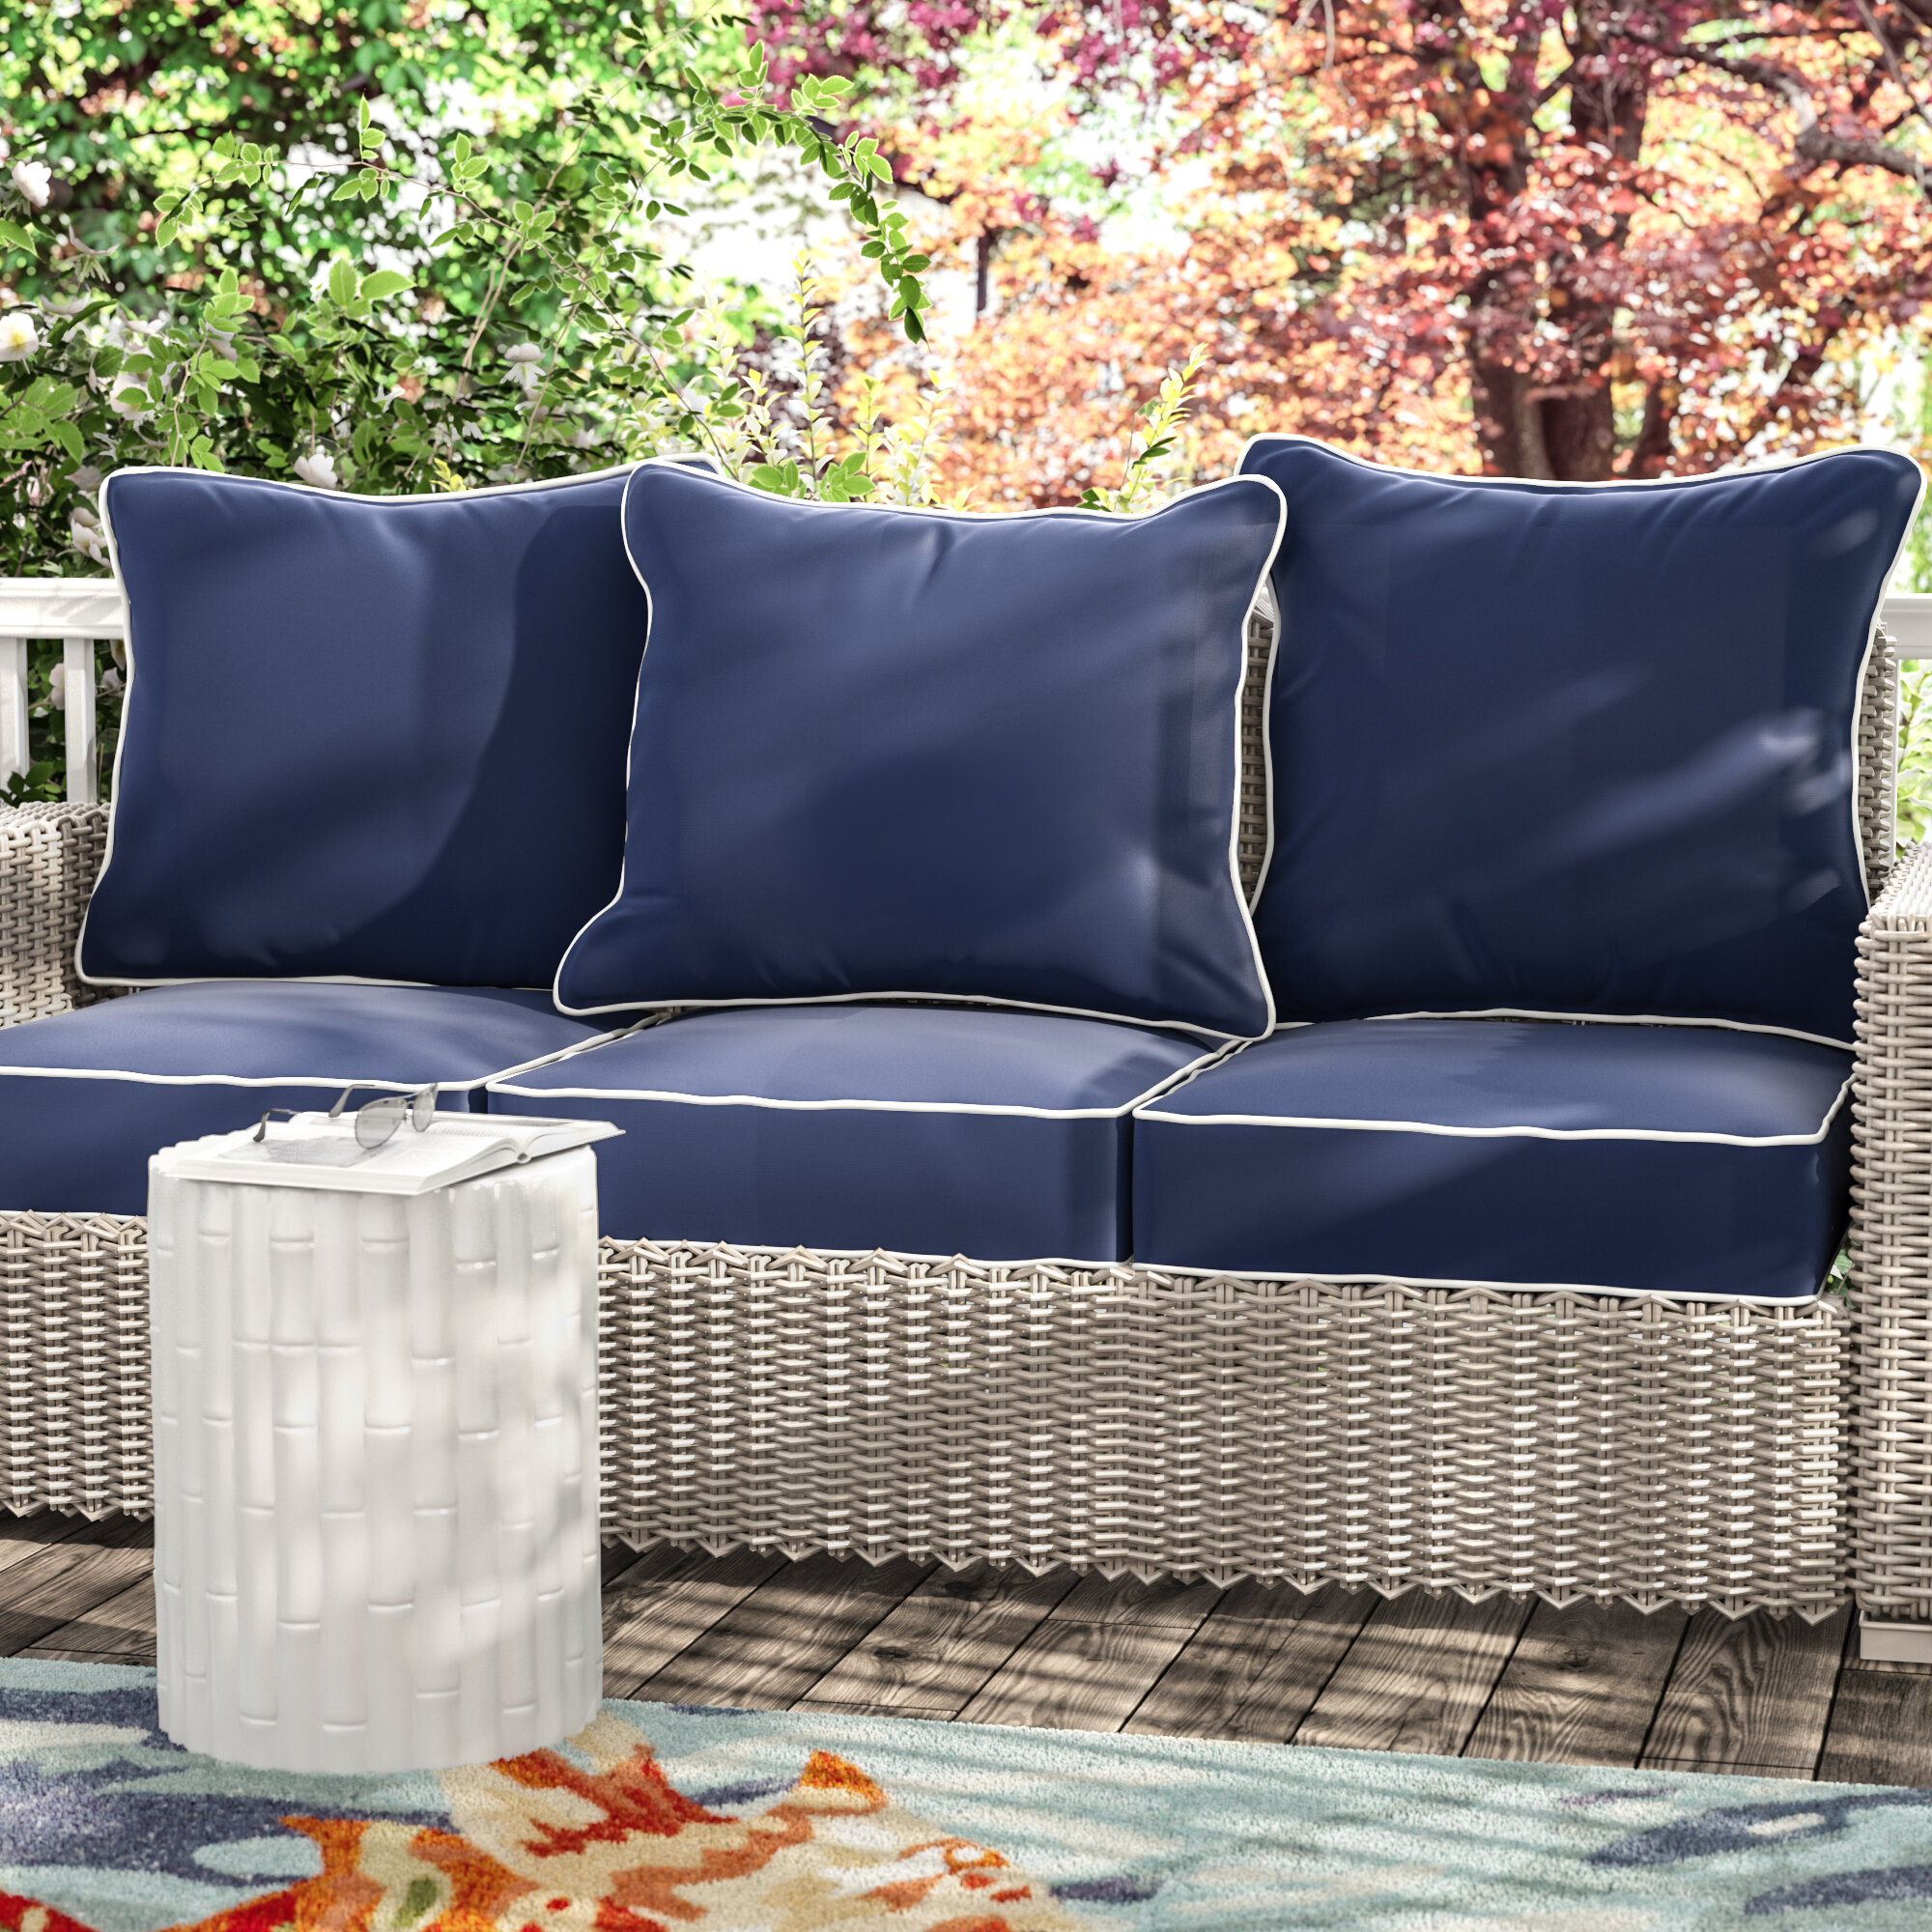 loveseat outdoor harbor palm wicker walmart patio crosley ip com cushions